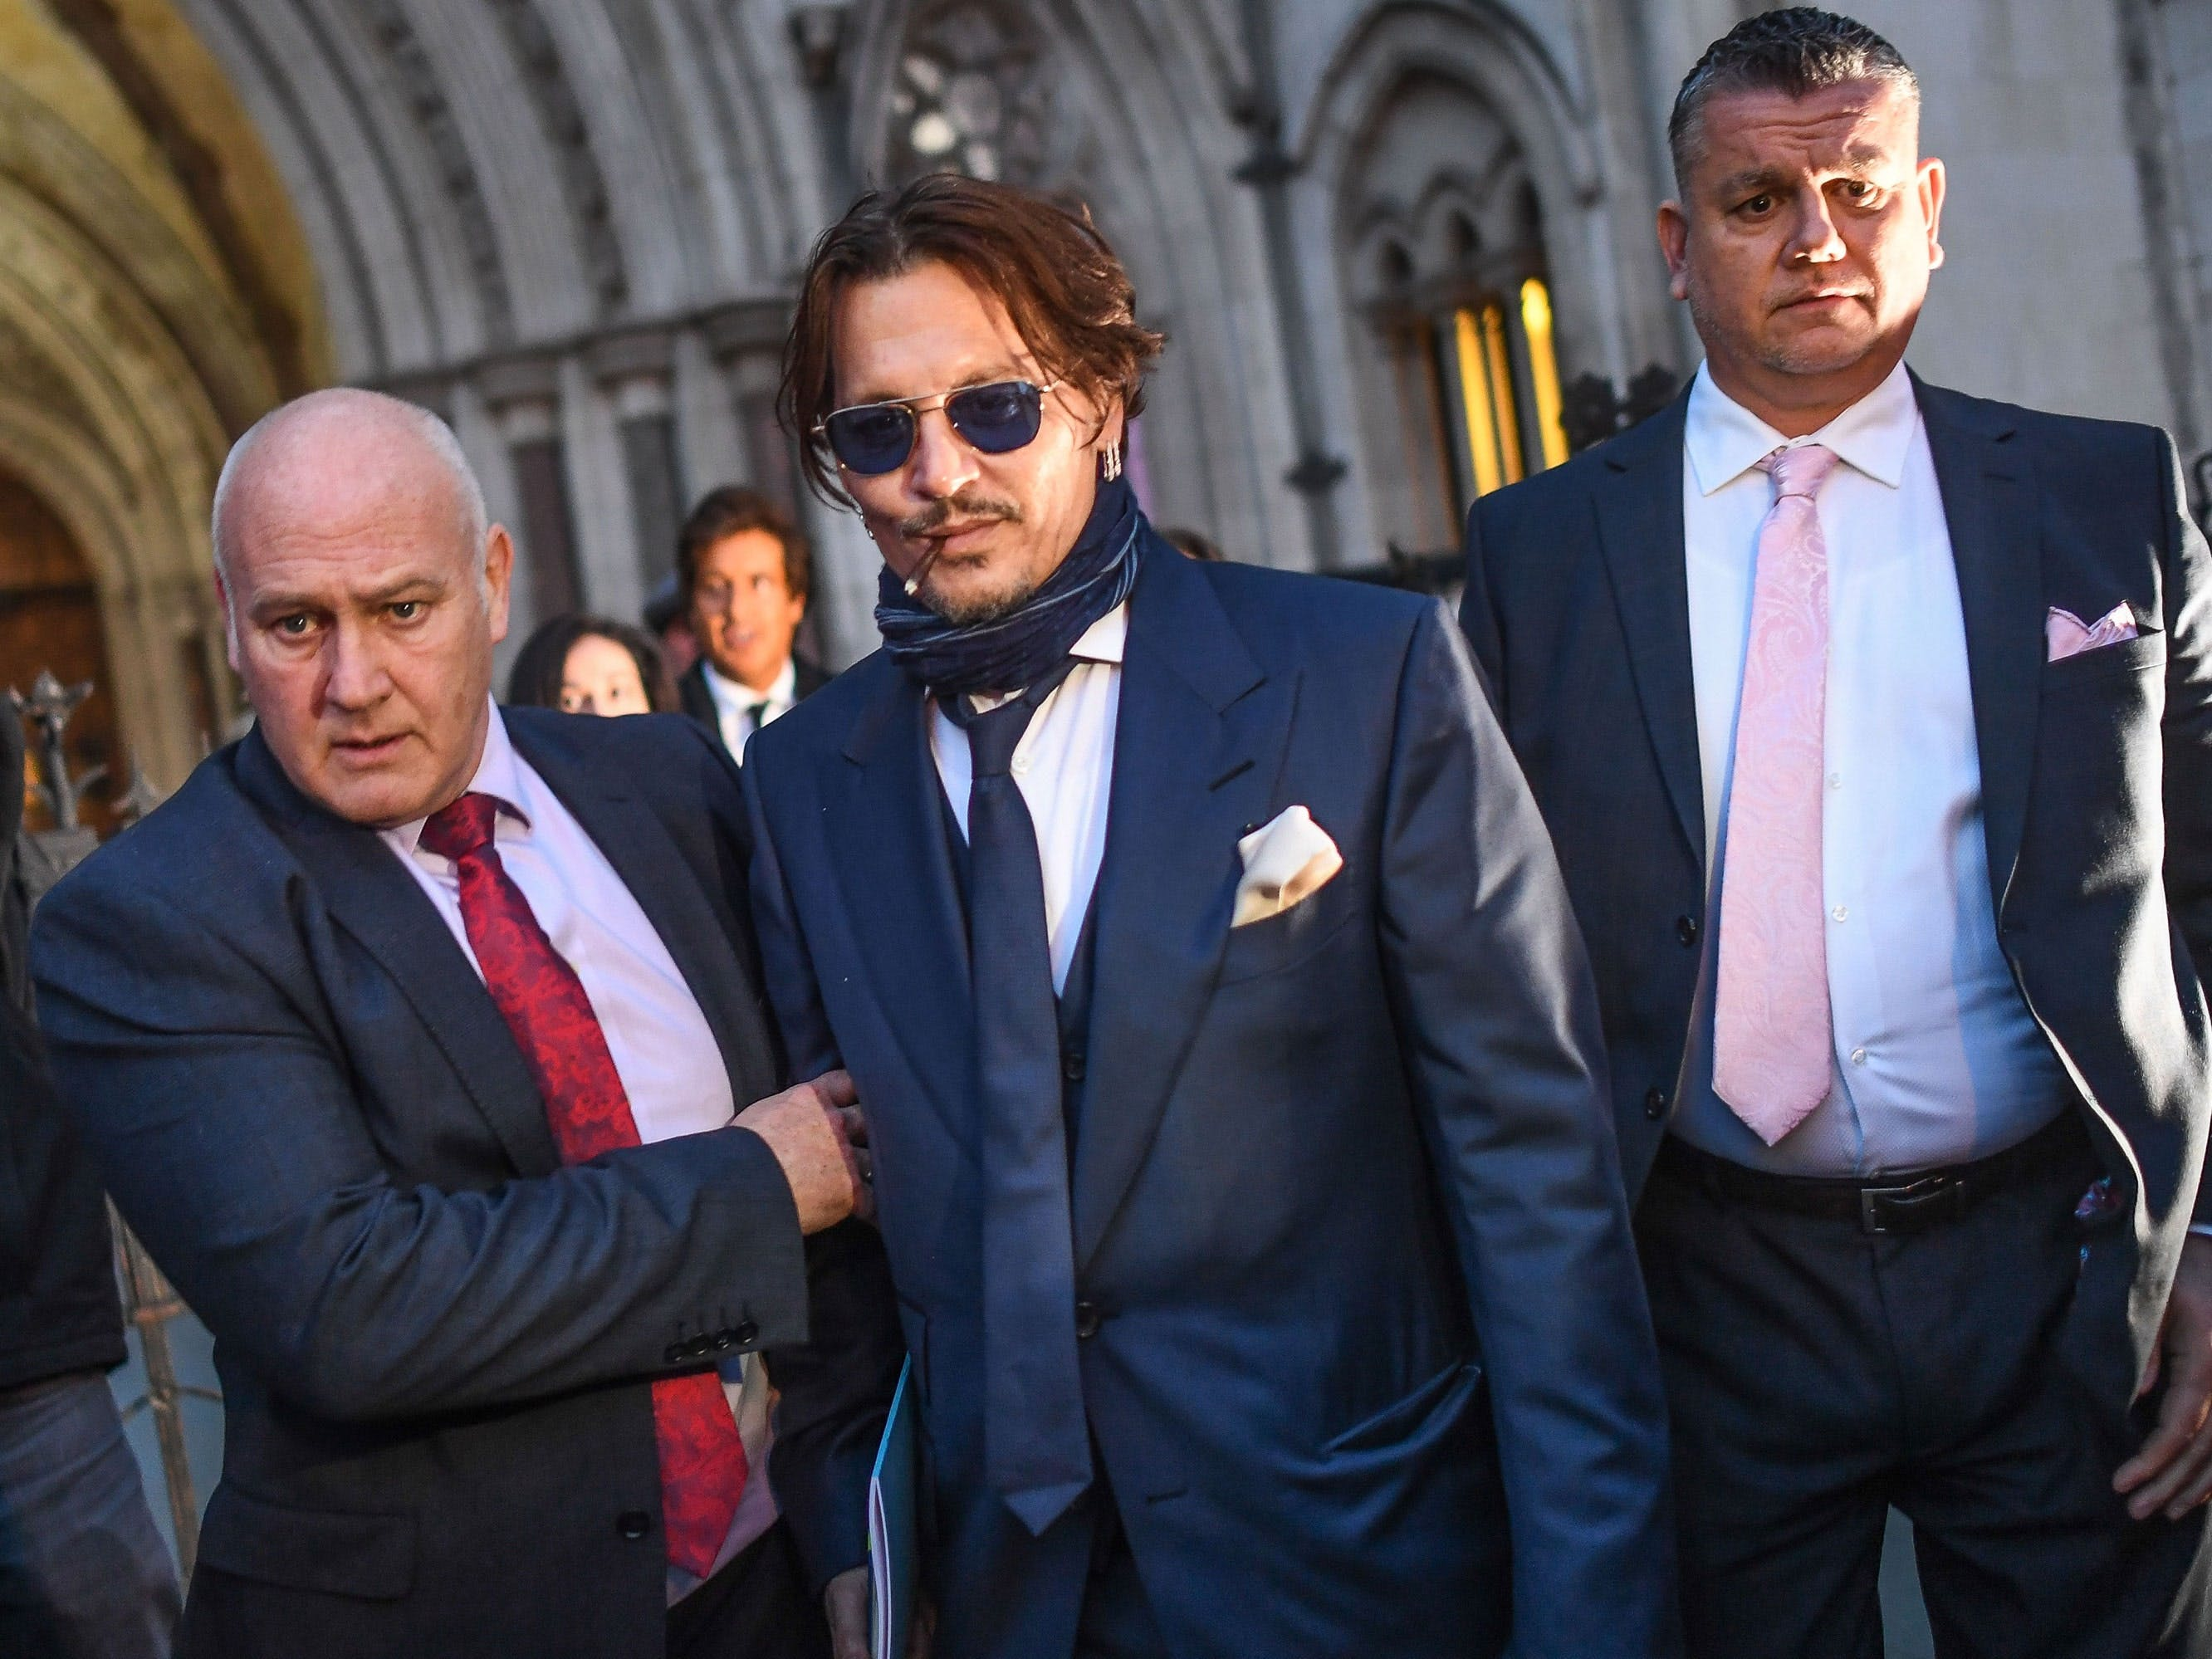 Johnny Depp Claims He Is Being Boycotted By Hollywood